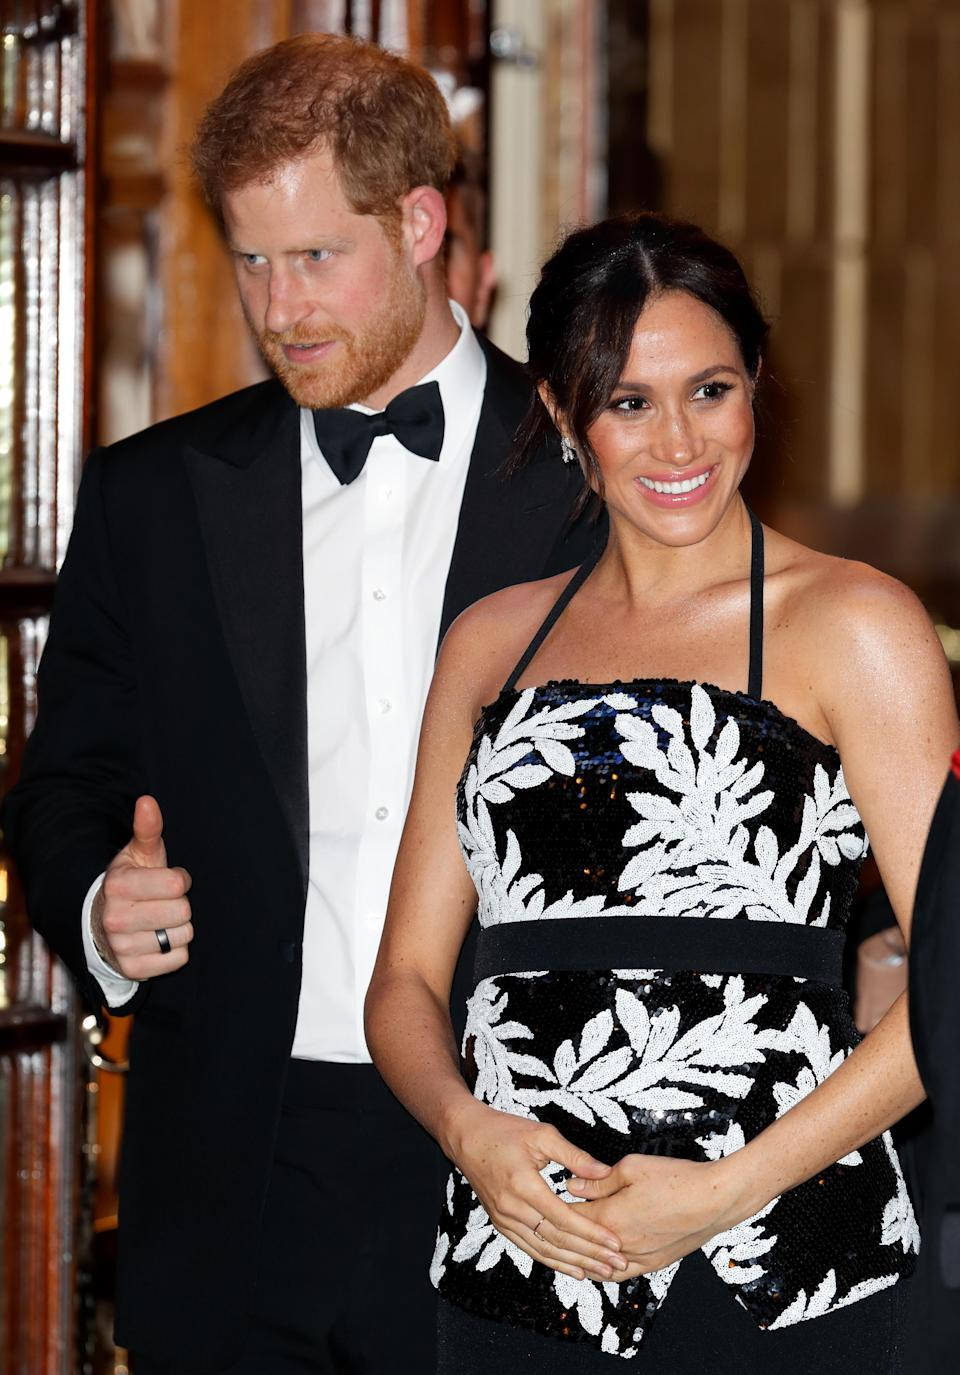 The Duchess of Sussex has apparently been warned about dressing too Hollywood. Photo: Getty